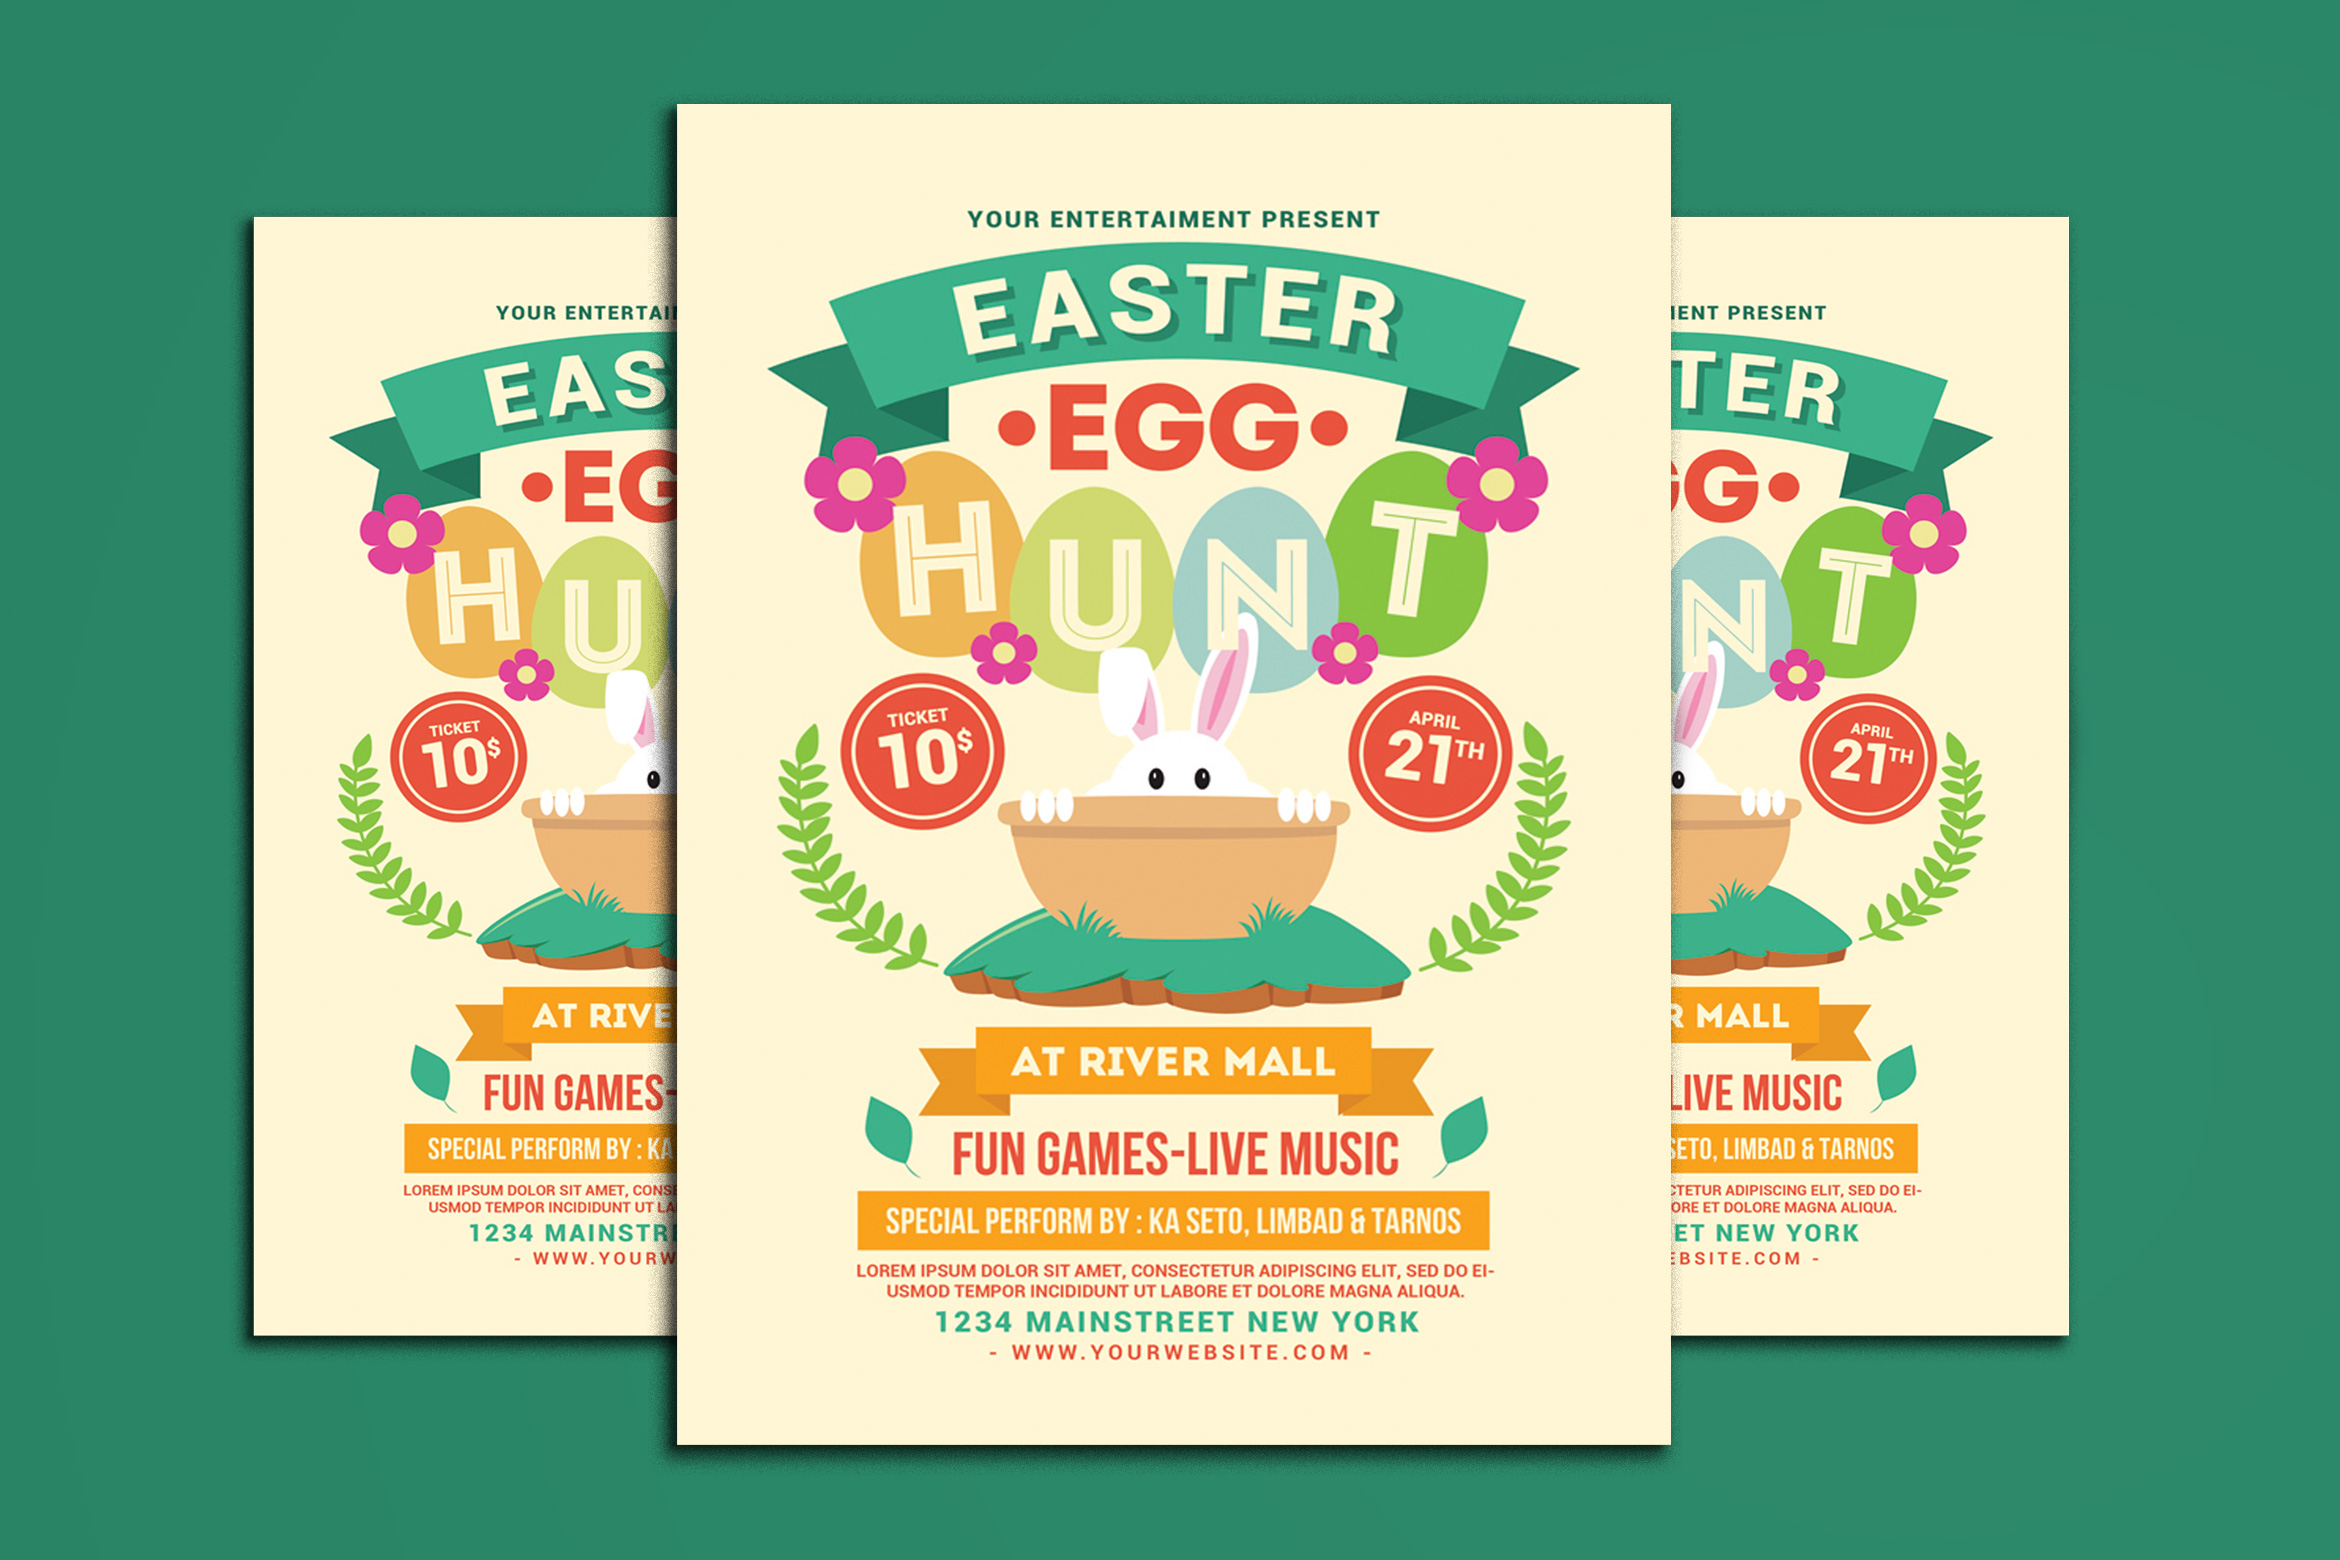 Download Free Easter Egg Hunt Flyer Graphic By Muhamadiqbalhidayat Creative for Cricut Explore, Silhouette and other cutting machines.